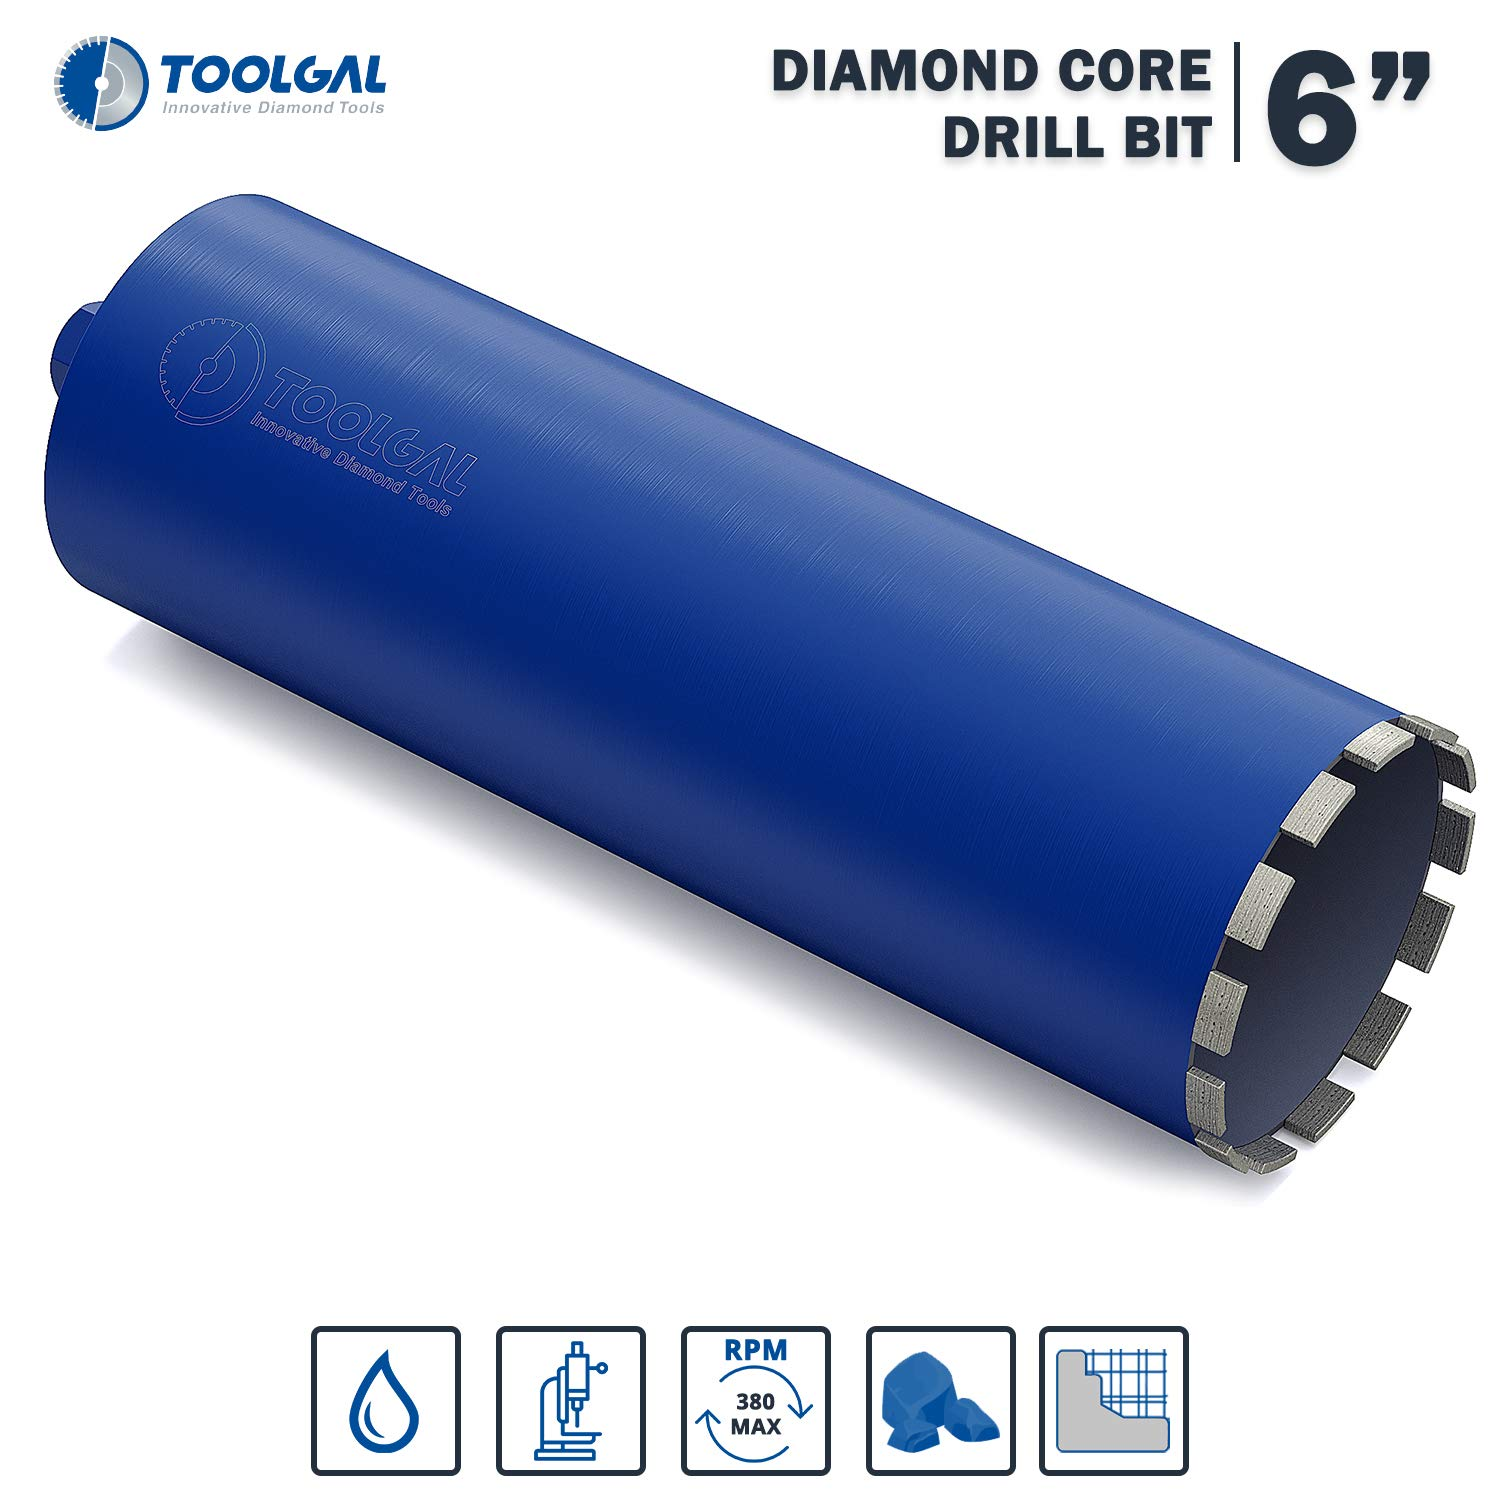 "TOOLGAL Diamond Core Drill Bit 6"" for Masonry - Wet drilling of Concrete/Reinforced concrete - Laser Welded Diamond Segmented - 11/4"" UNC for fixed or hand-held core drilling machines"